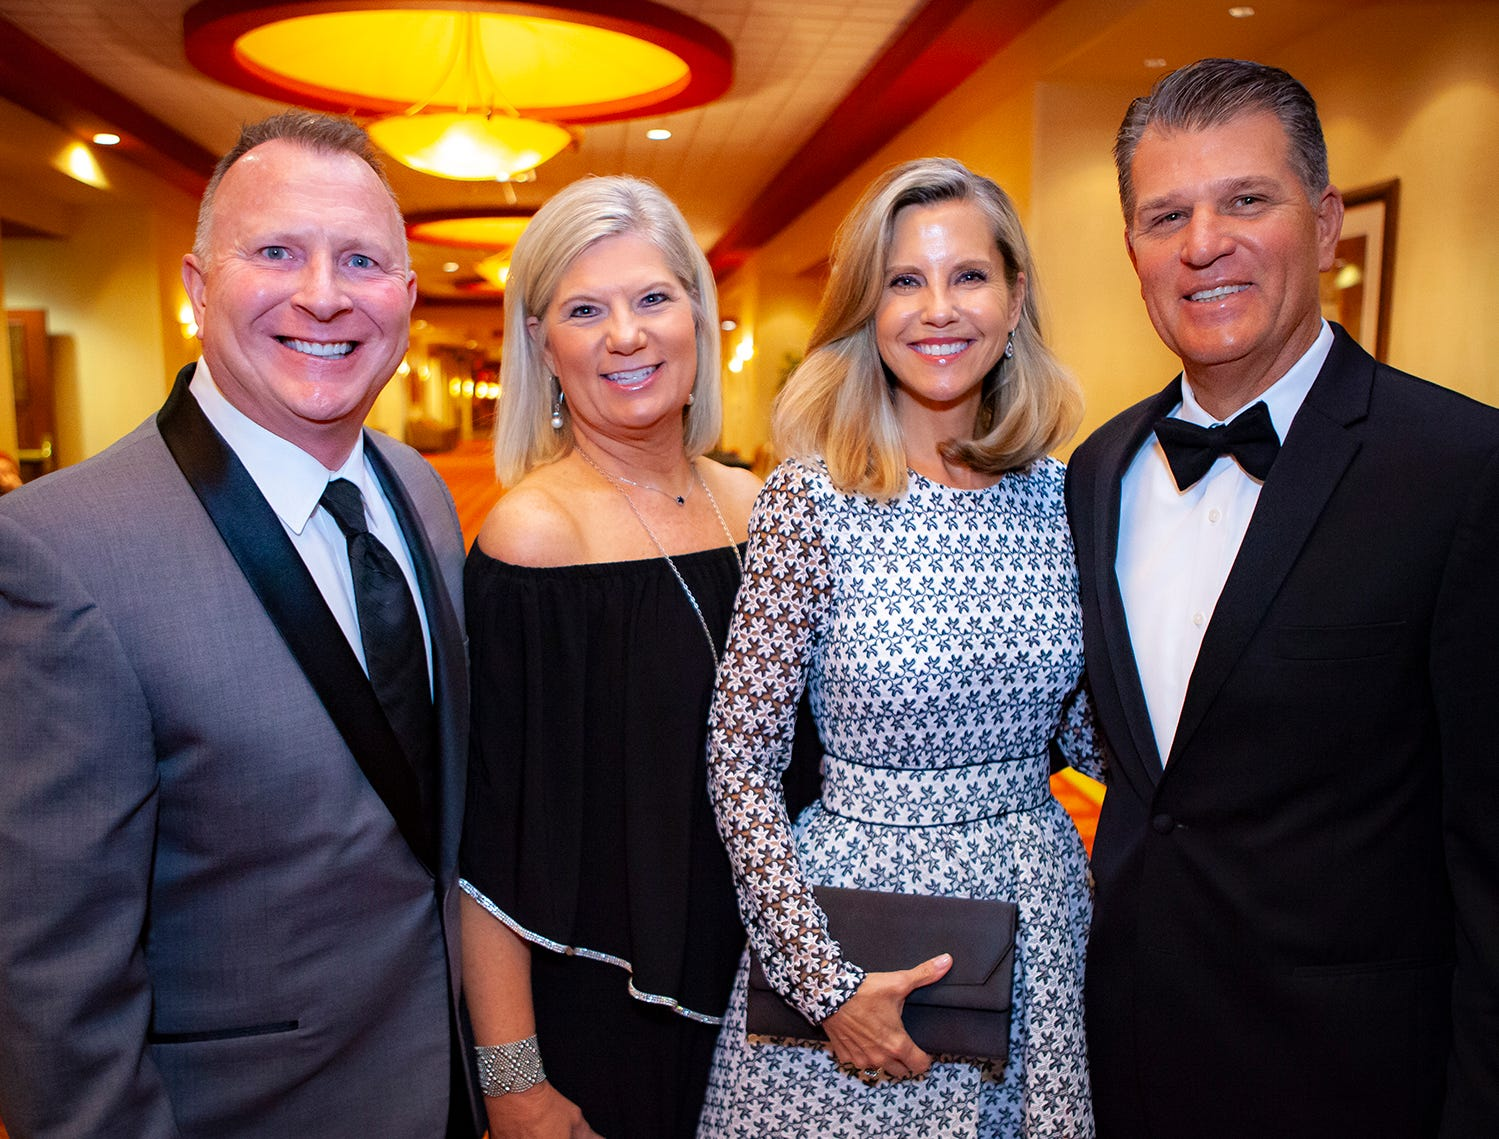 Kelly and Cindy Rollins with  Susan and the Hon. Howard Wilson at the 2019 Saint Thomas Rutherford Foundation Gala on Saturday, Jan. 19, 2019 at Embassy Suites Murfreesboro.